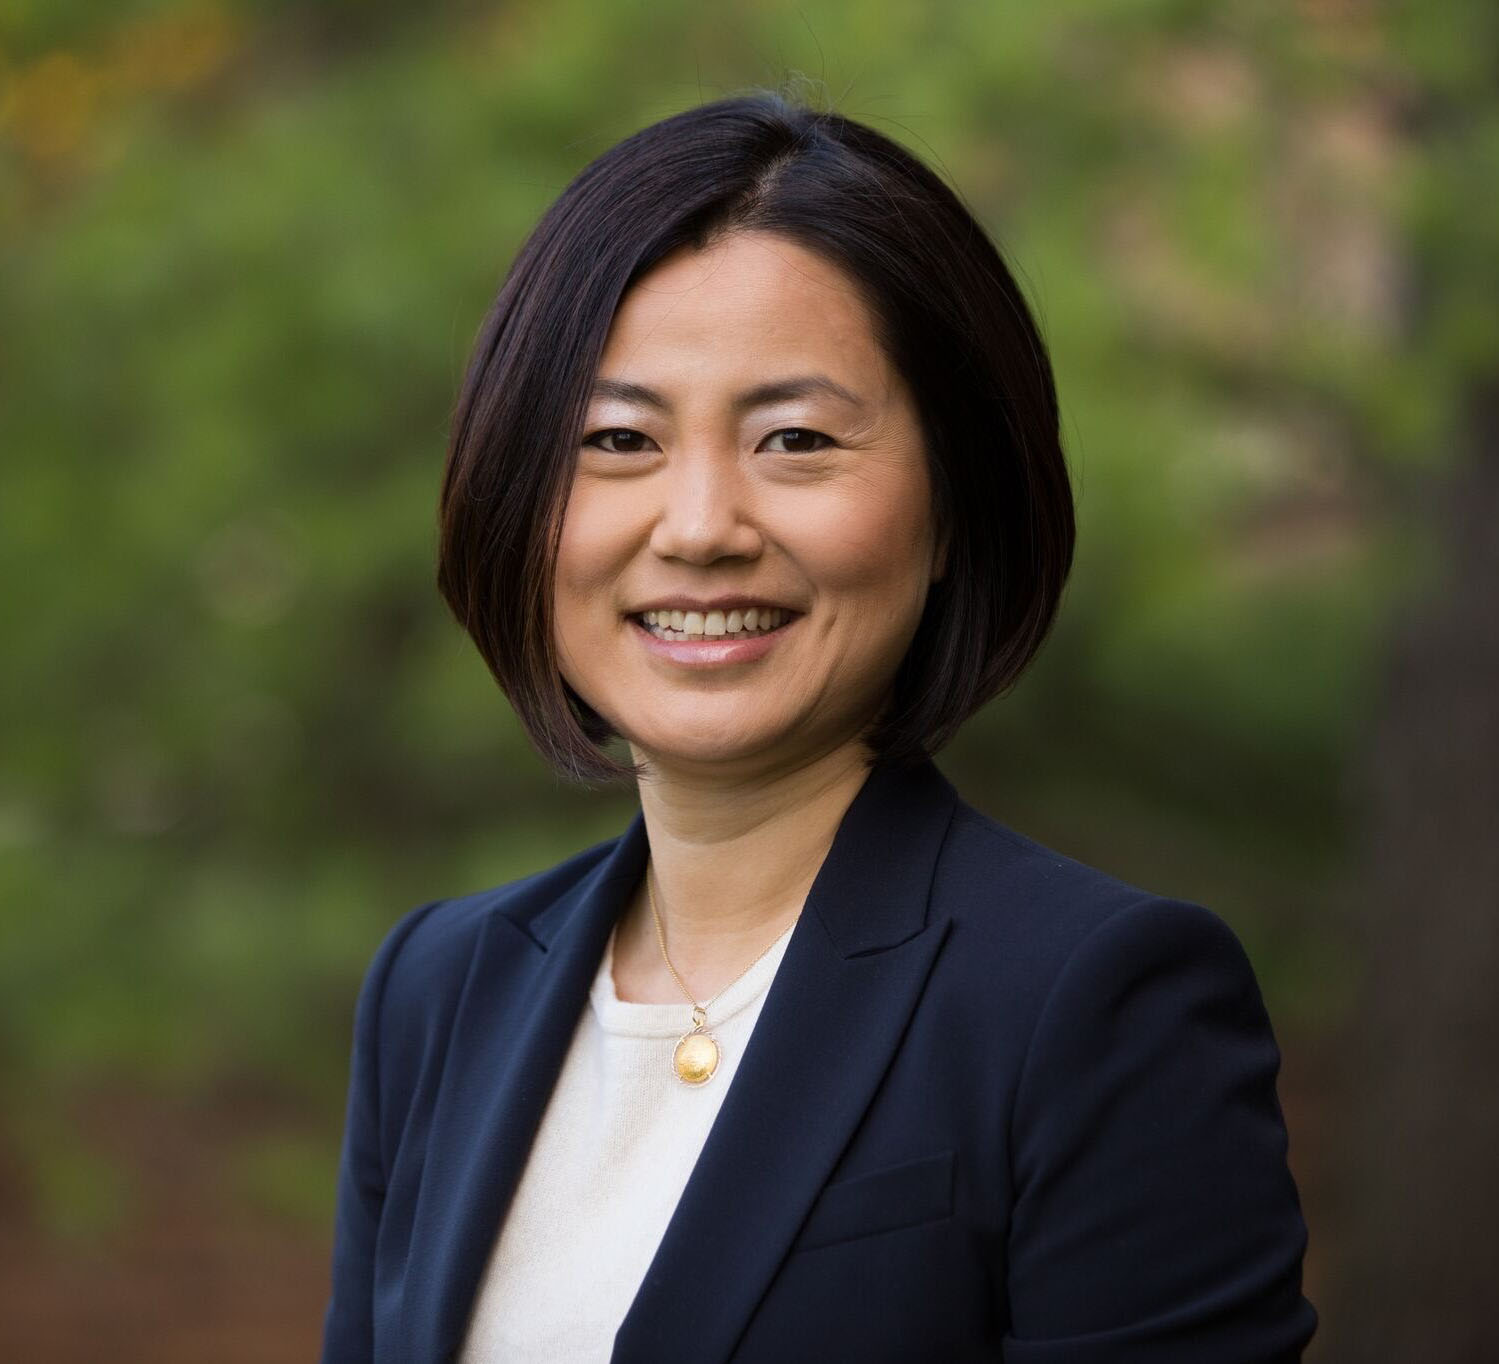 An Asian woman with straight, chin length, dark brown hair, smiles directly at the camera. She is wearing a white scoop neck shirt, navy blue blazer, and a gold pendant necklace.